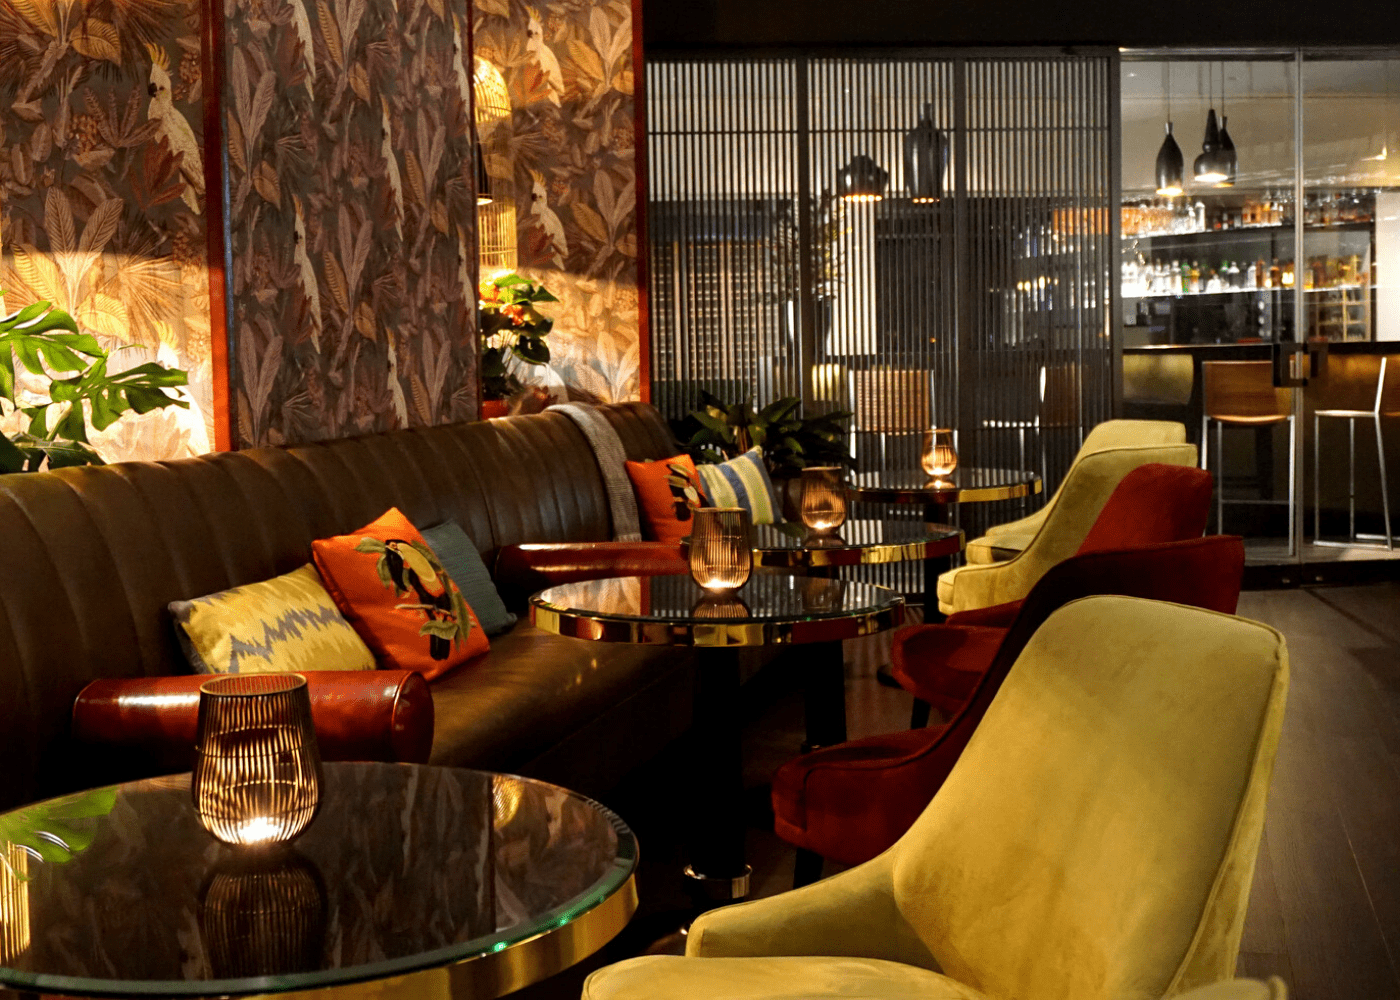 Metta gin and whisky bar | New bars in Singapore March 2020